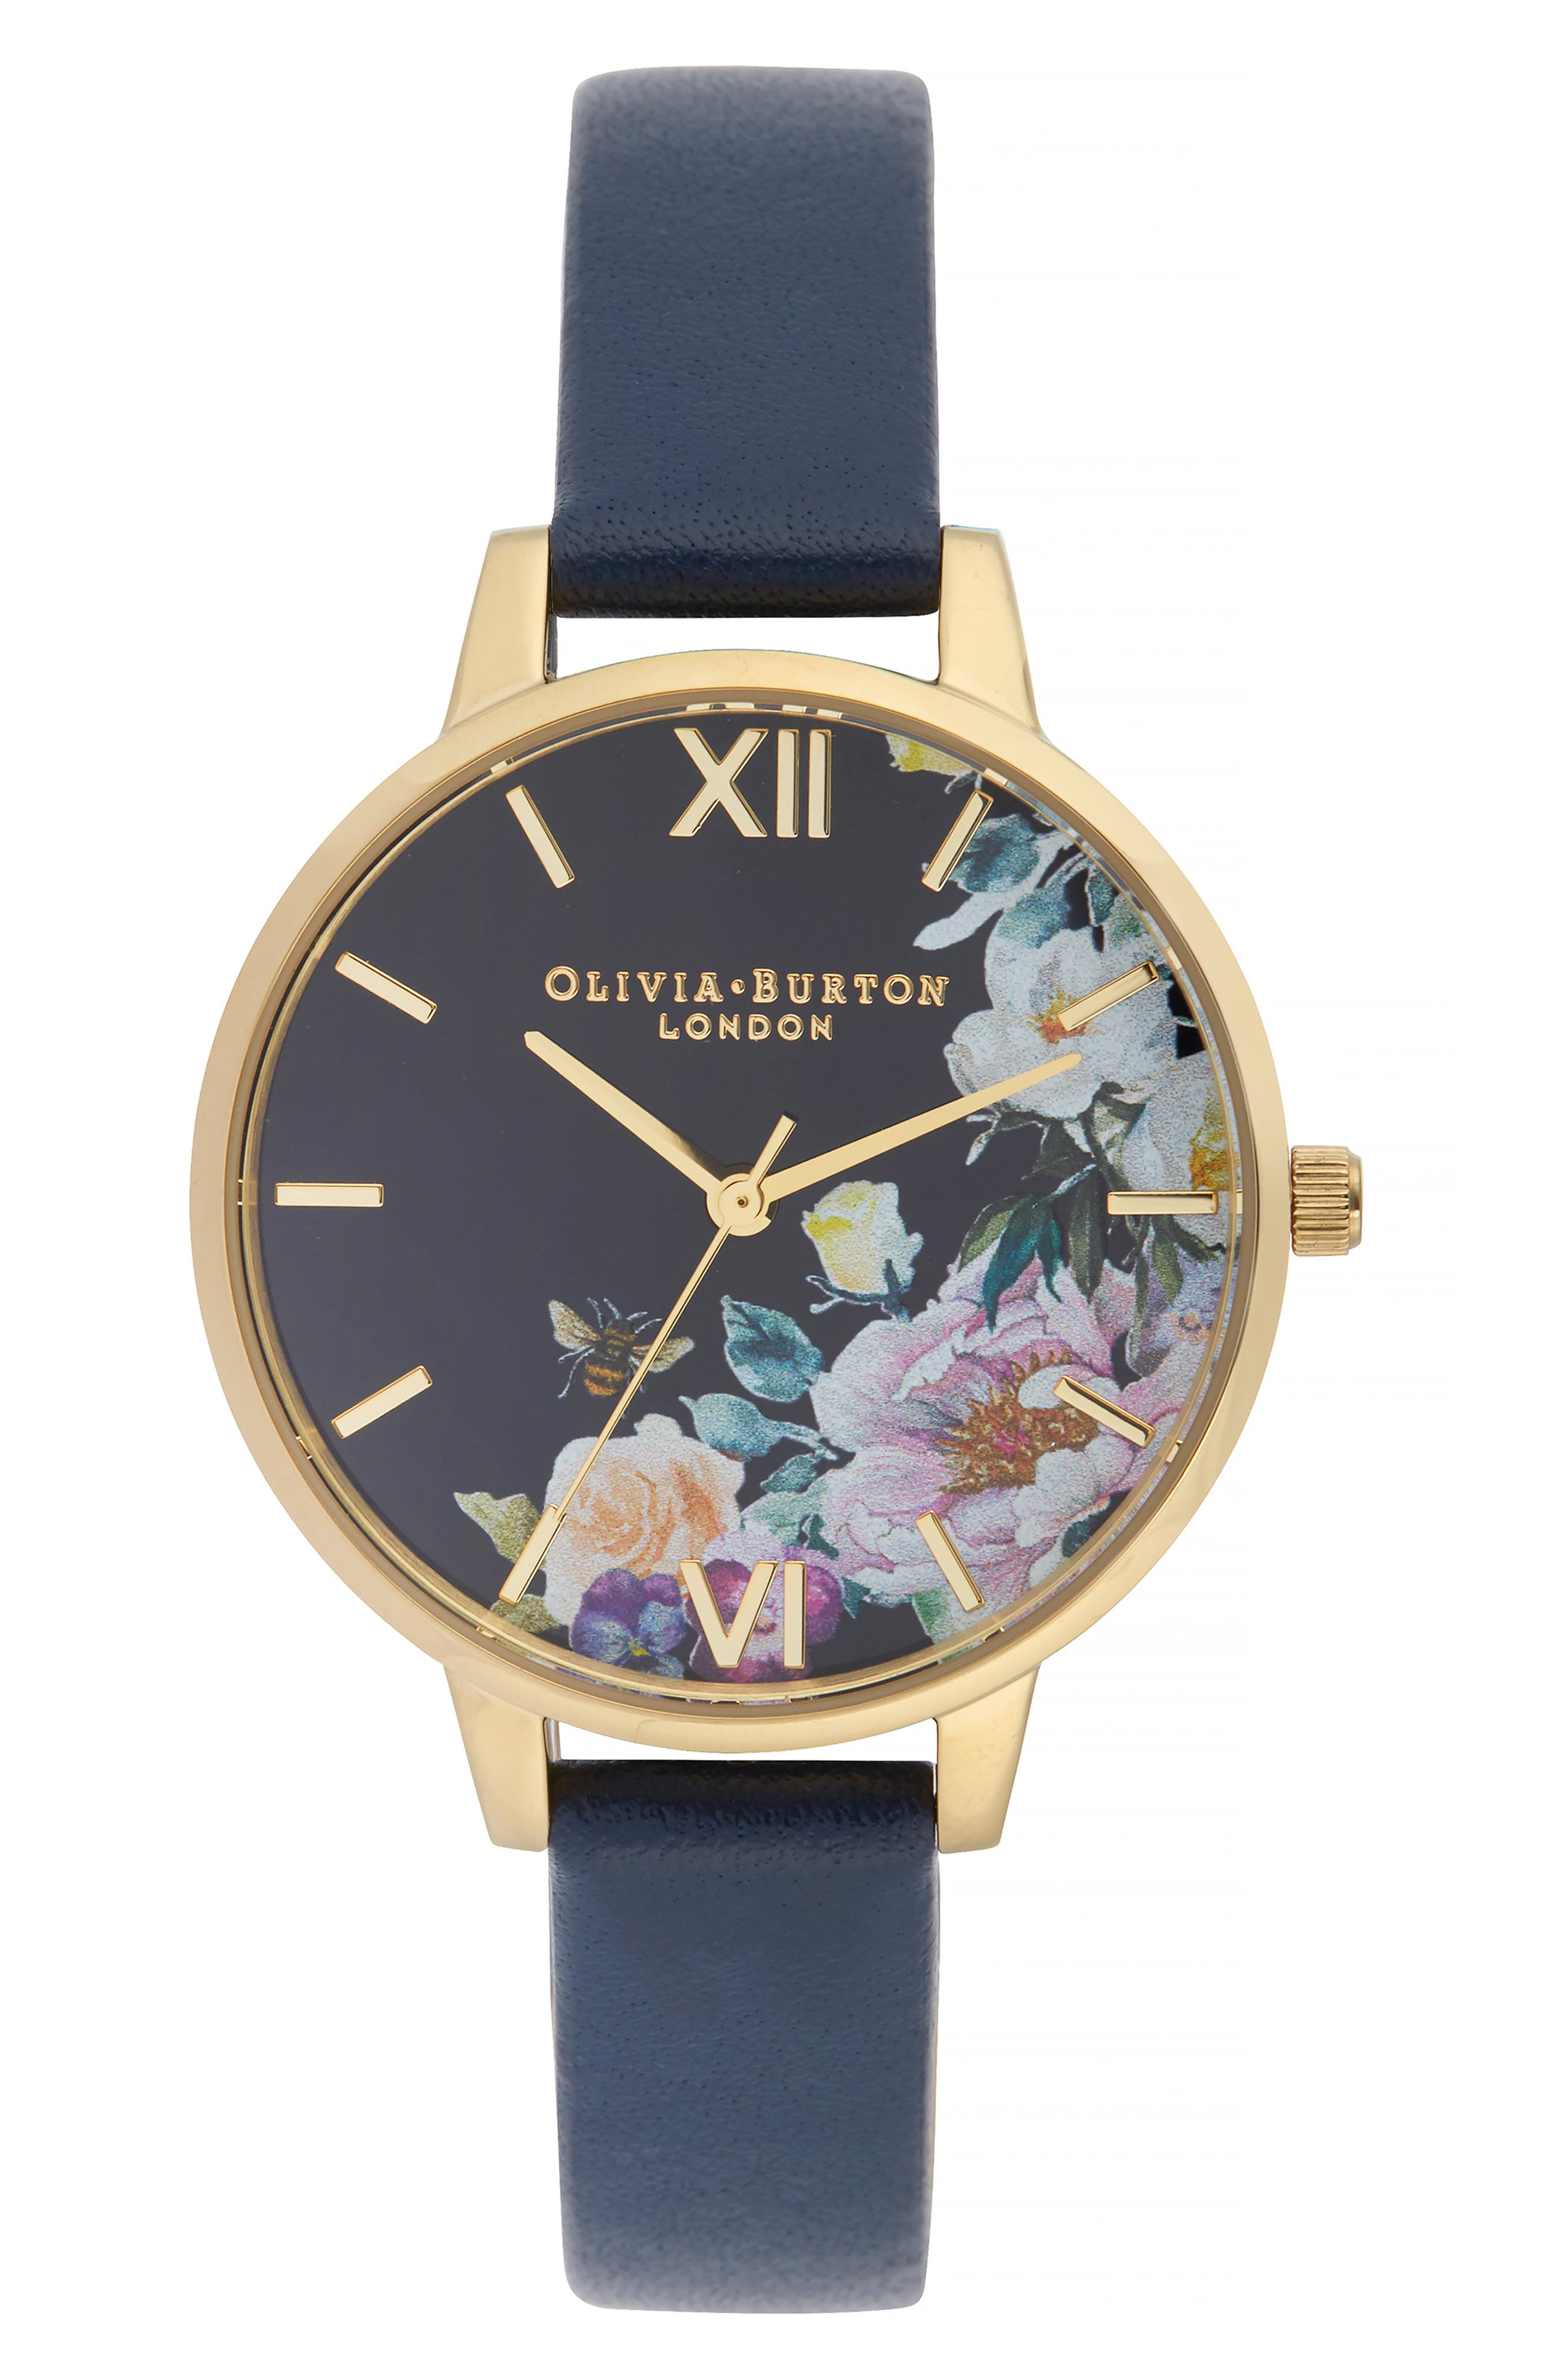 OLIVIA BURTON Enchanted Garden Leather Strap Watch, 34Mm in Navy/ Floral/ Gold